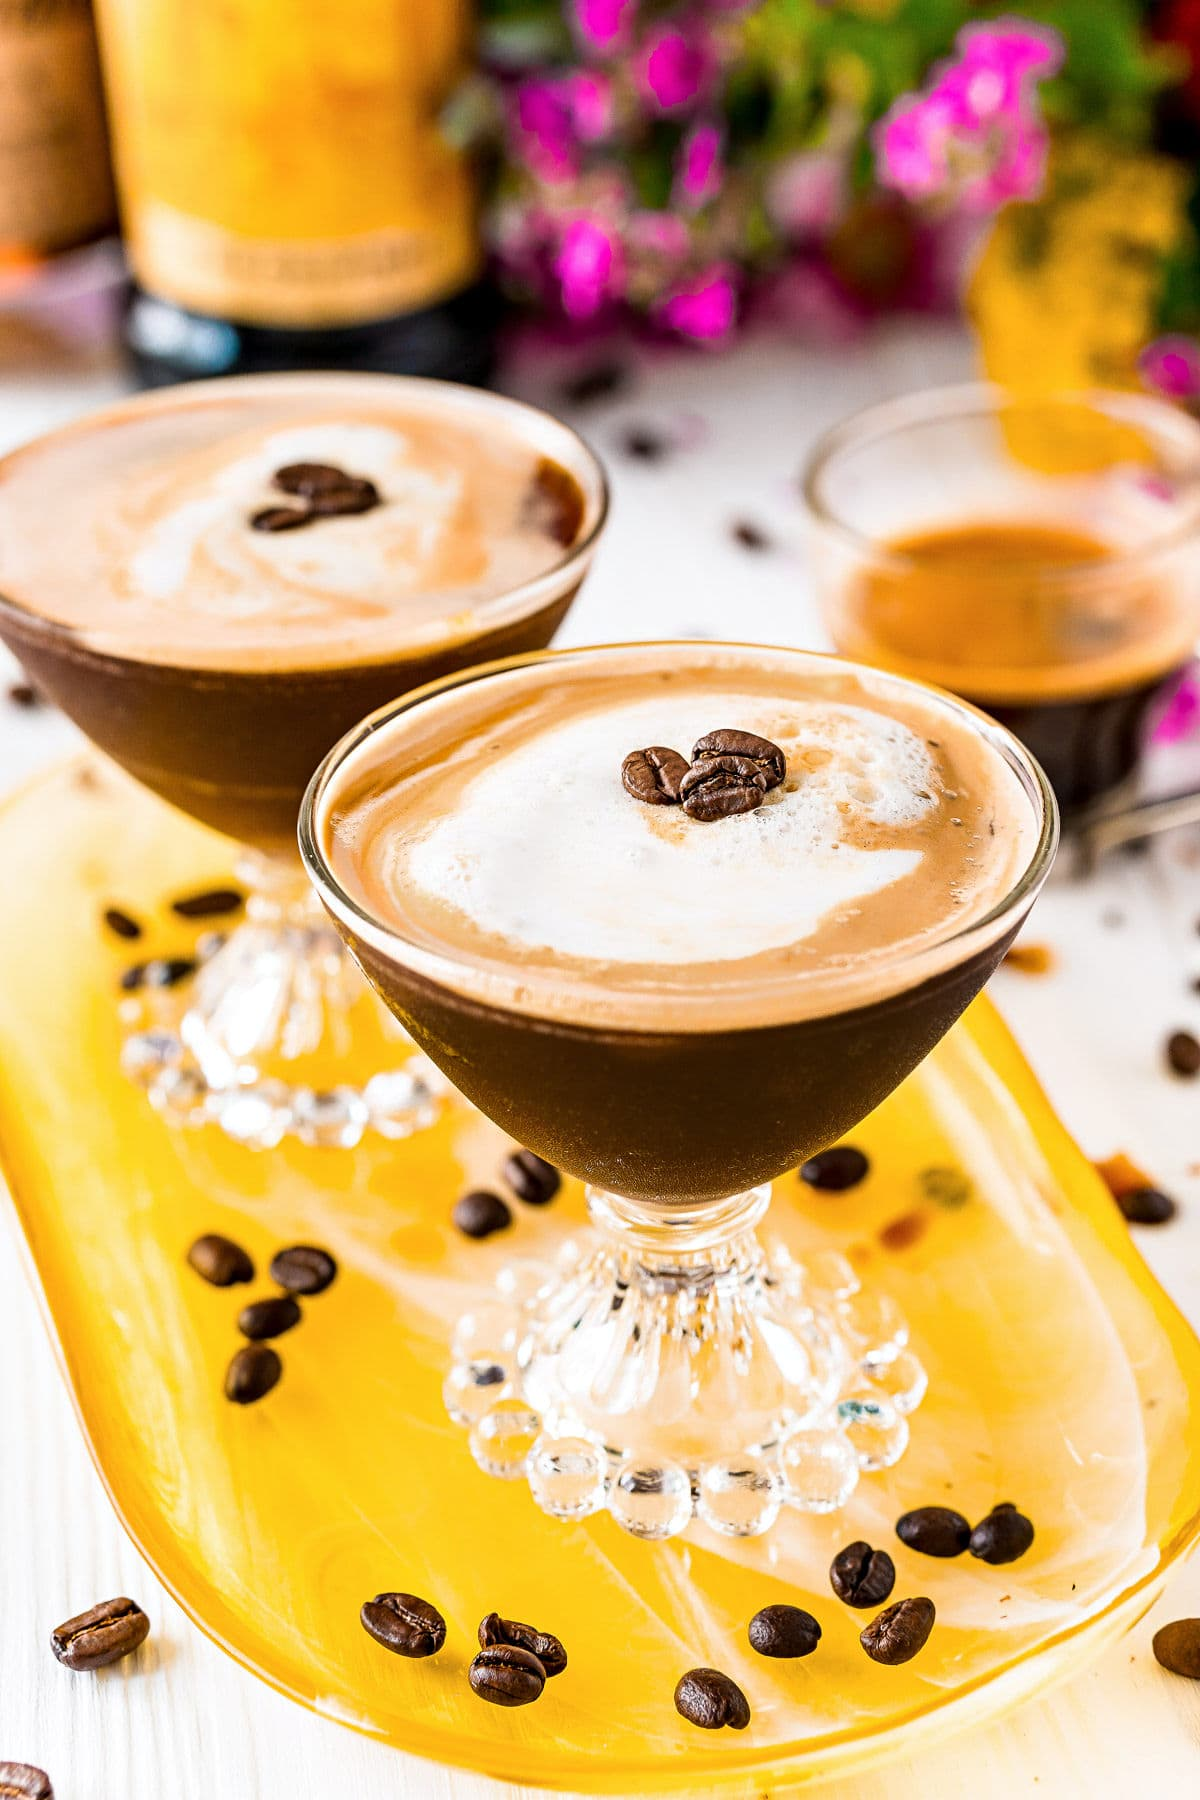 two espresso martinis on a yellow glass tray with espresso beans scattered about